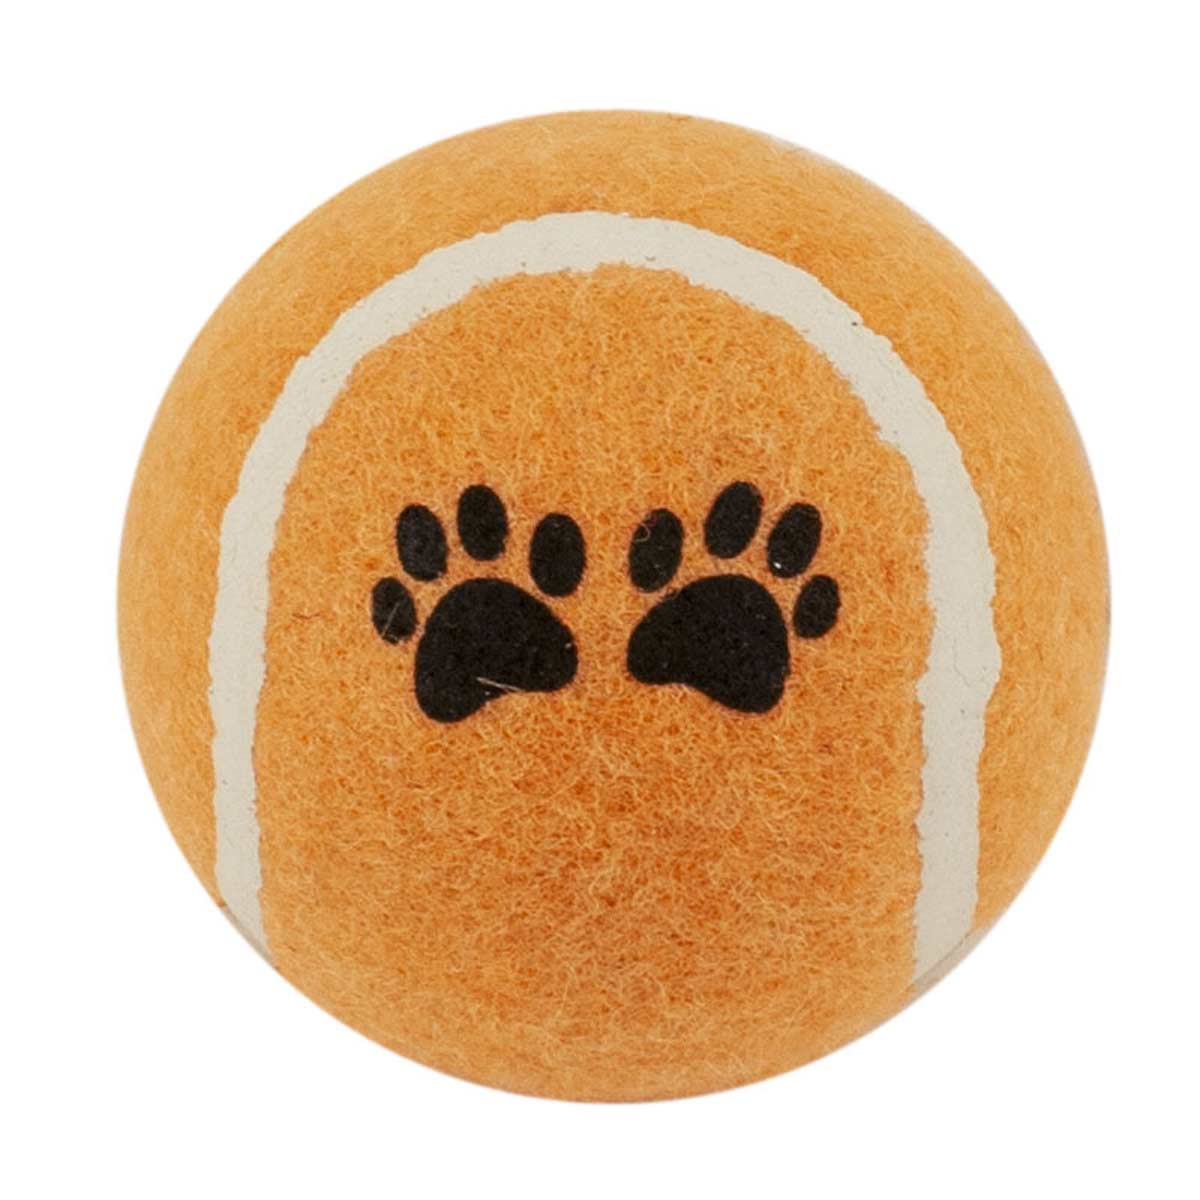 Orange Tennis Ball 2.5 inch Dog Toy